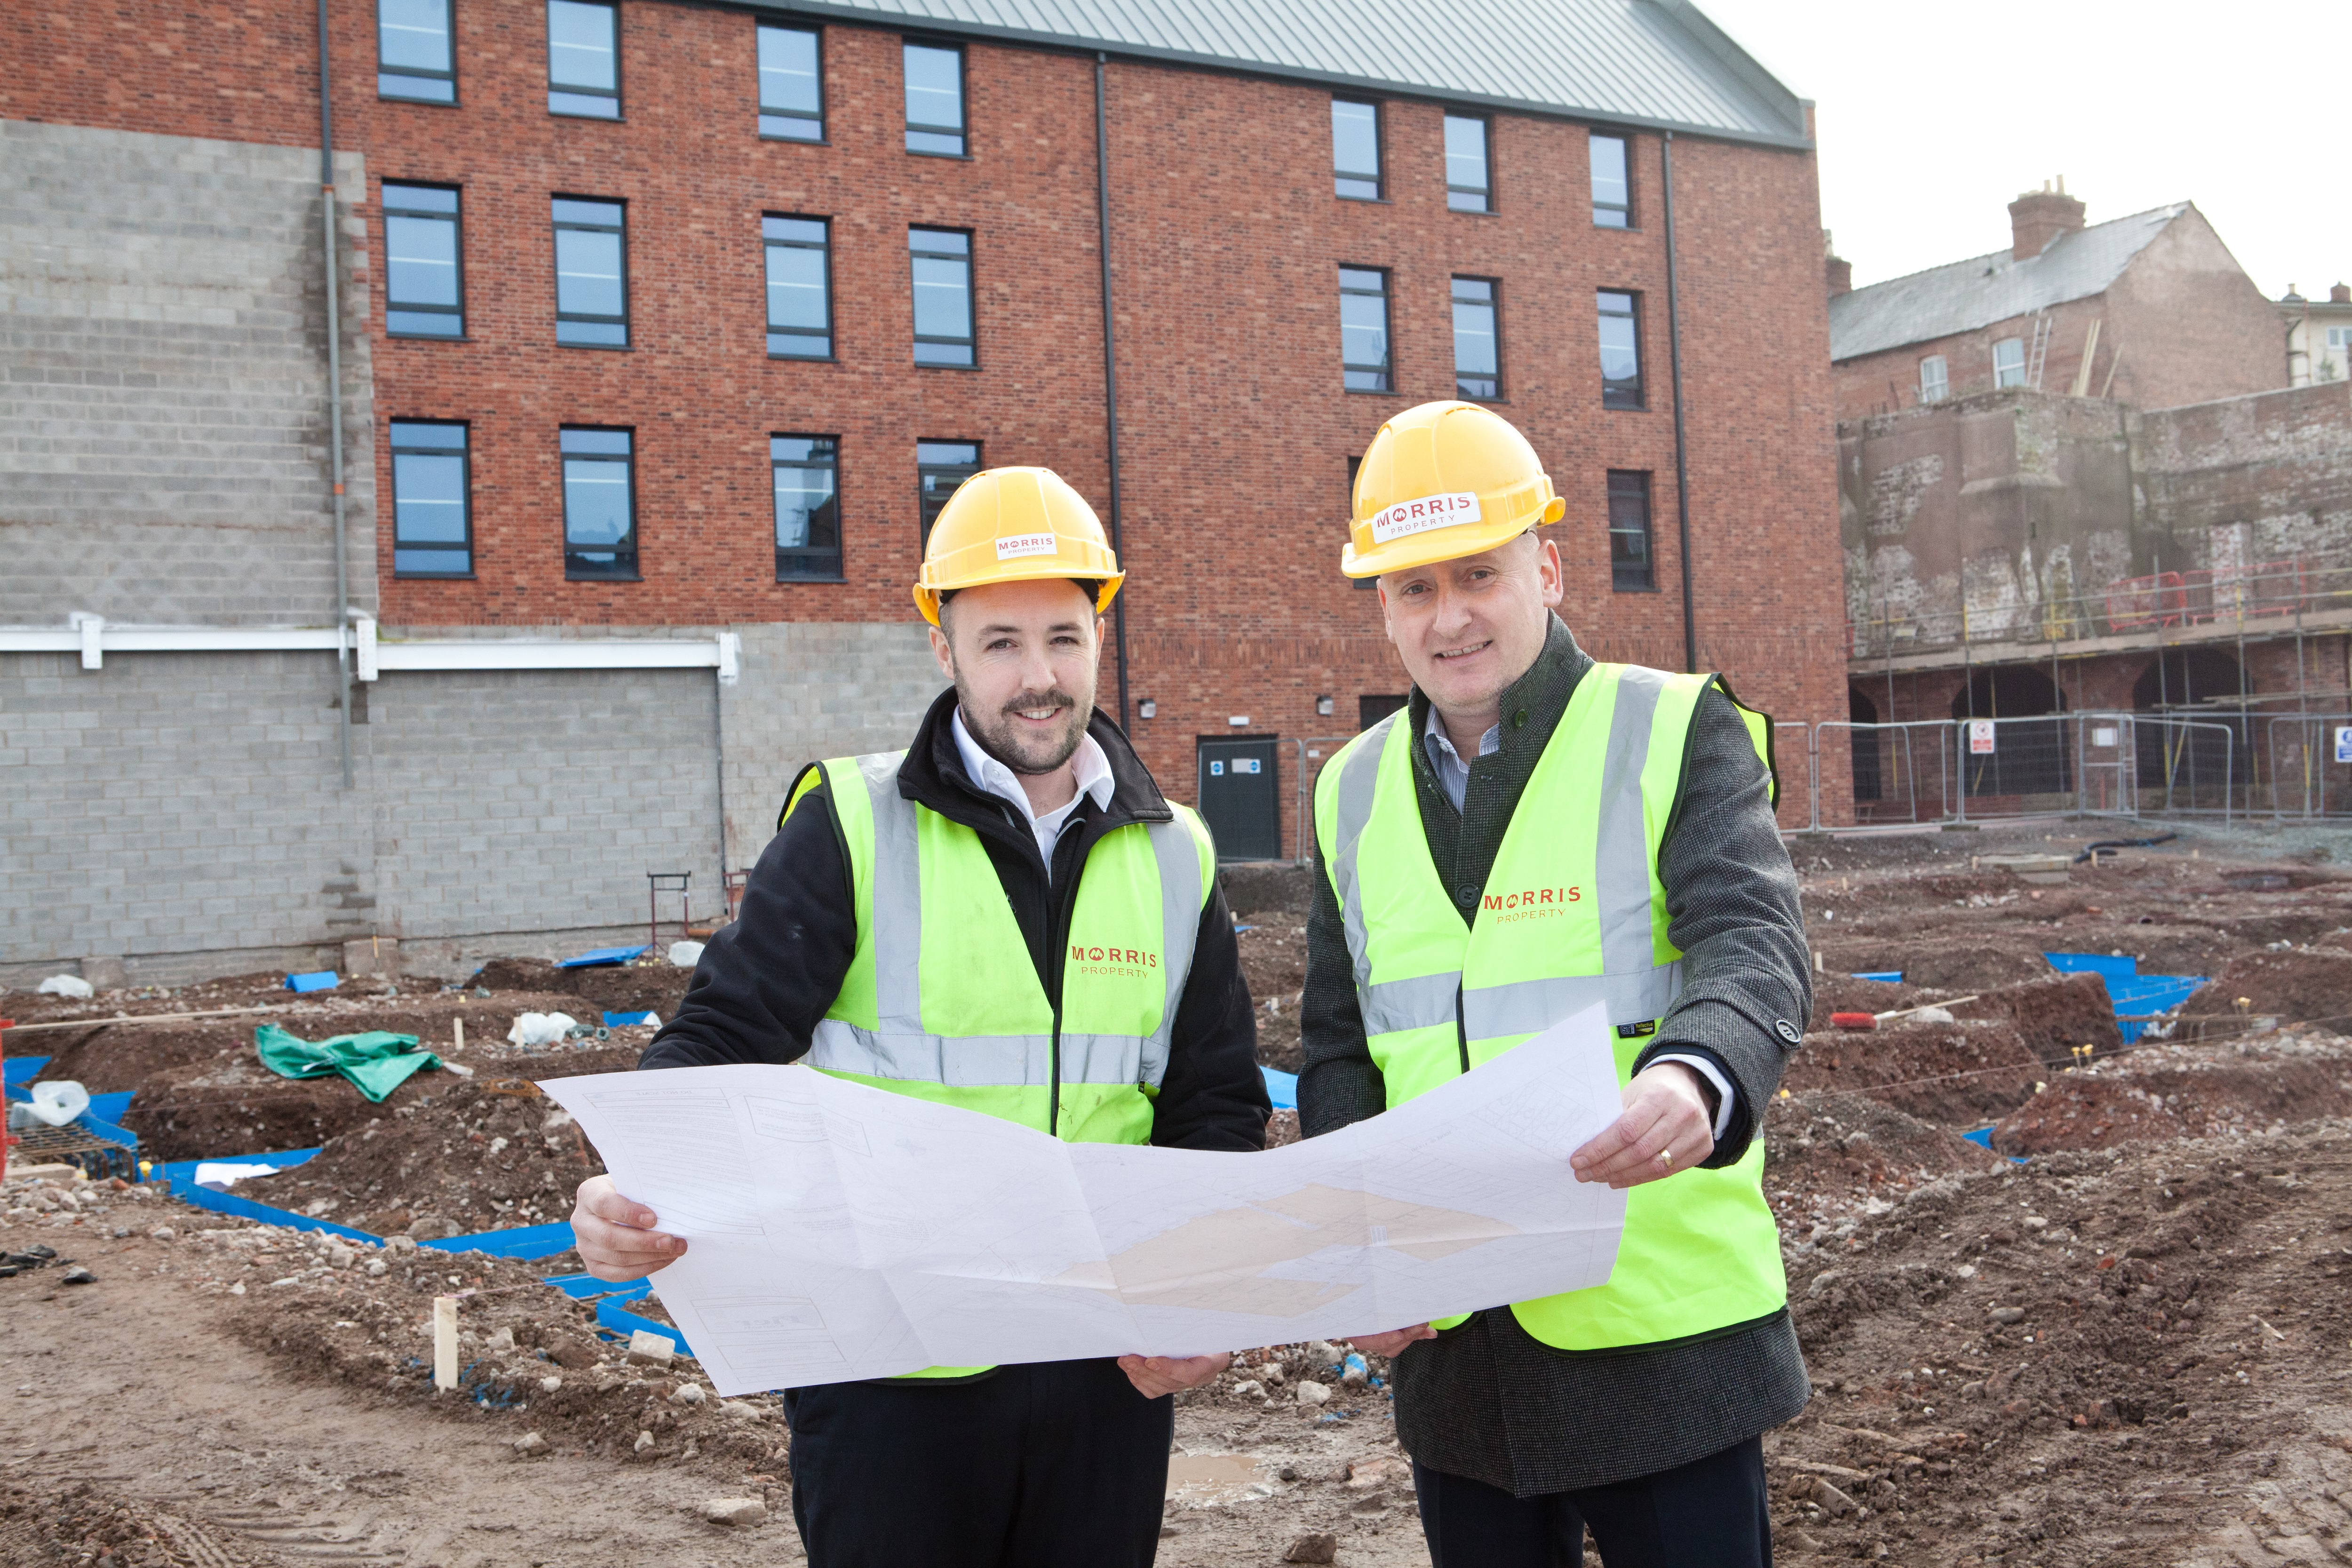 New phase of Tannery development is underway